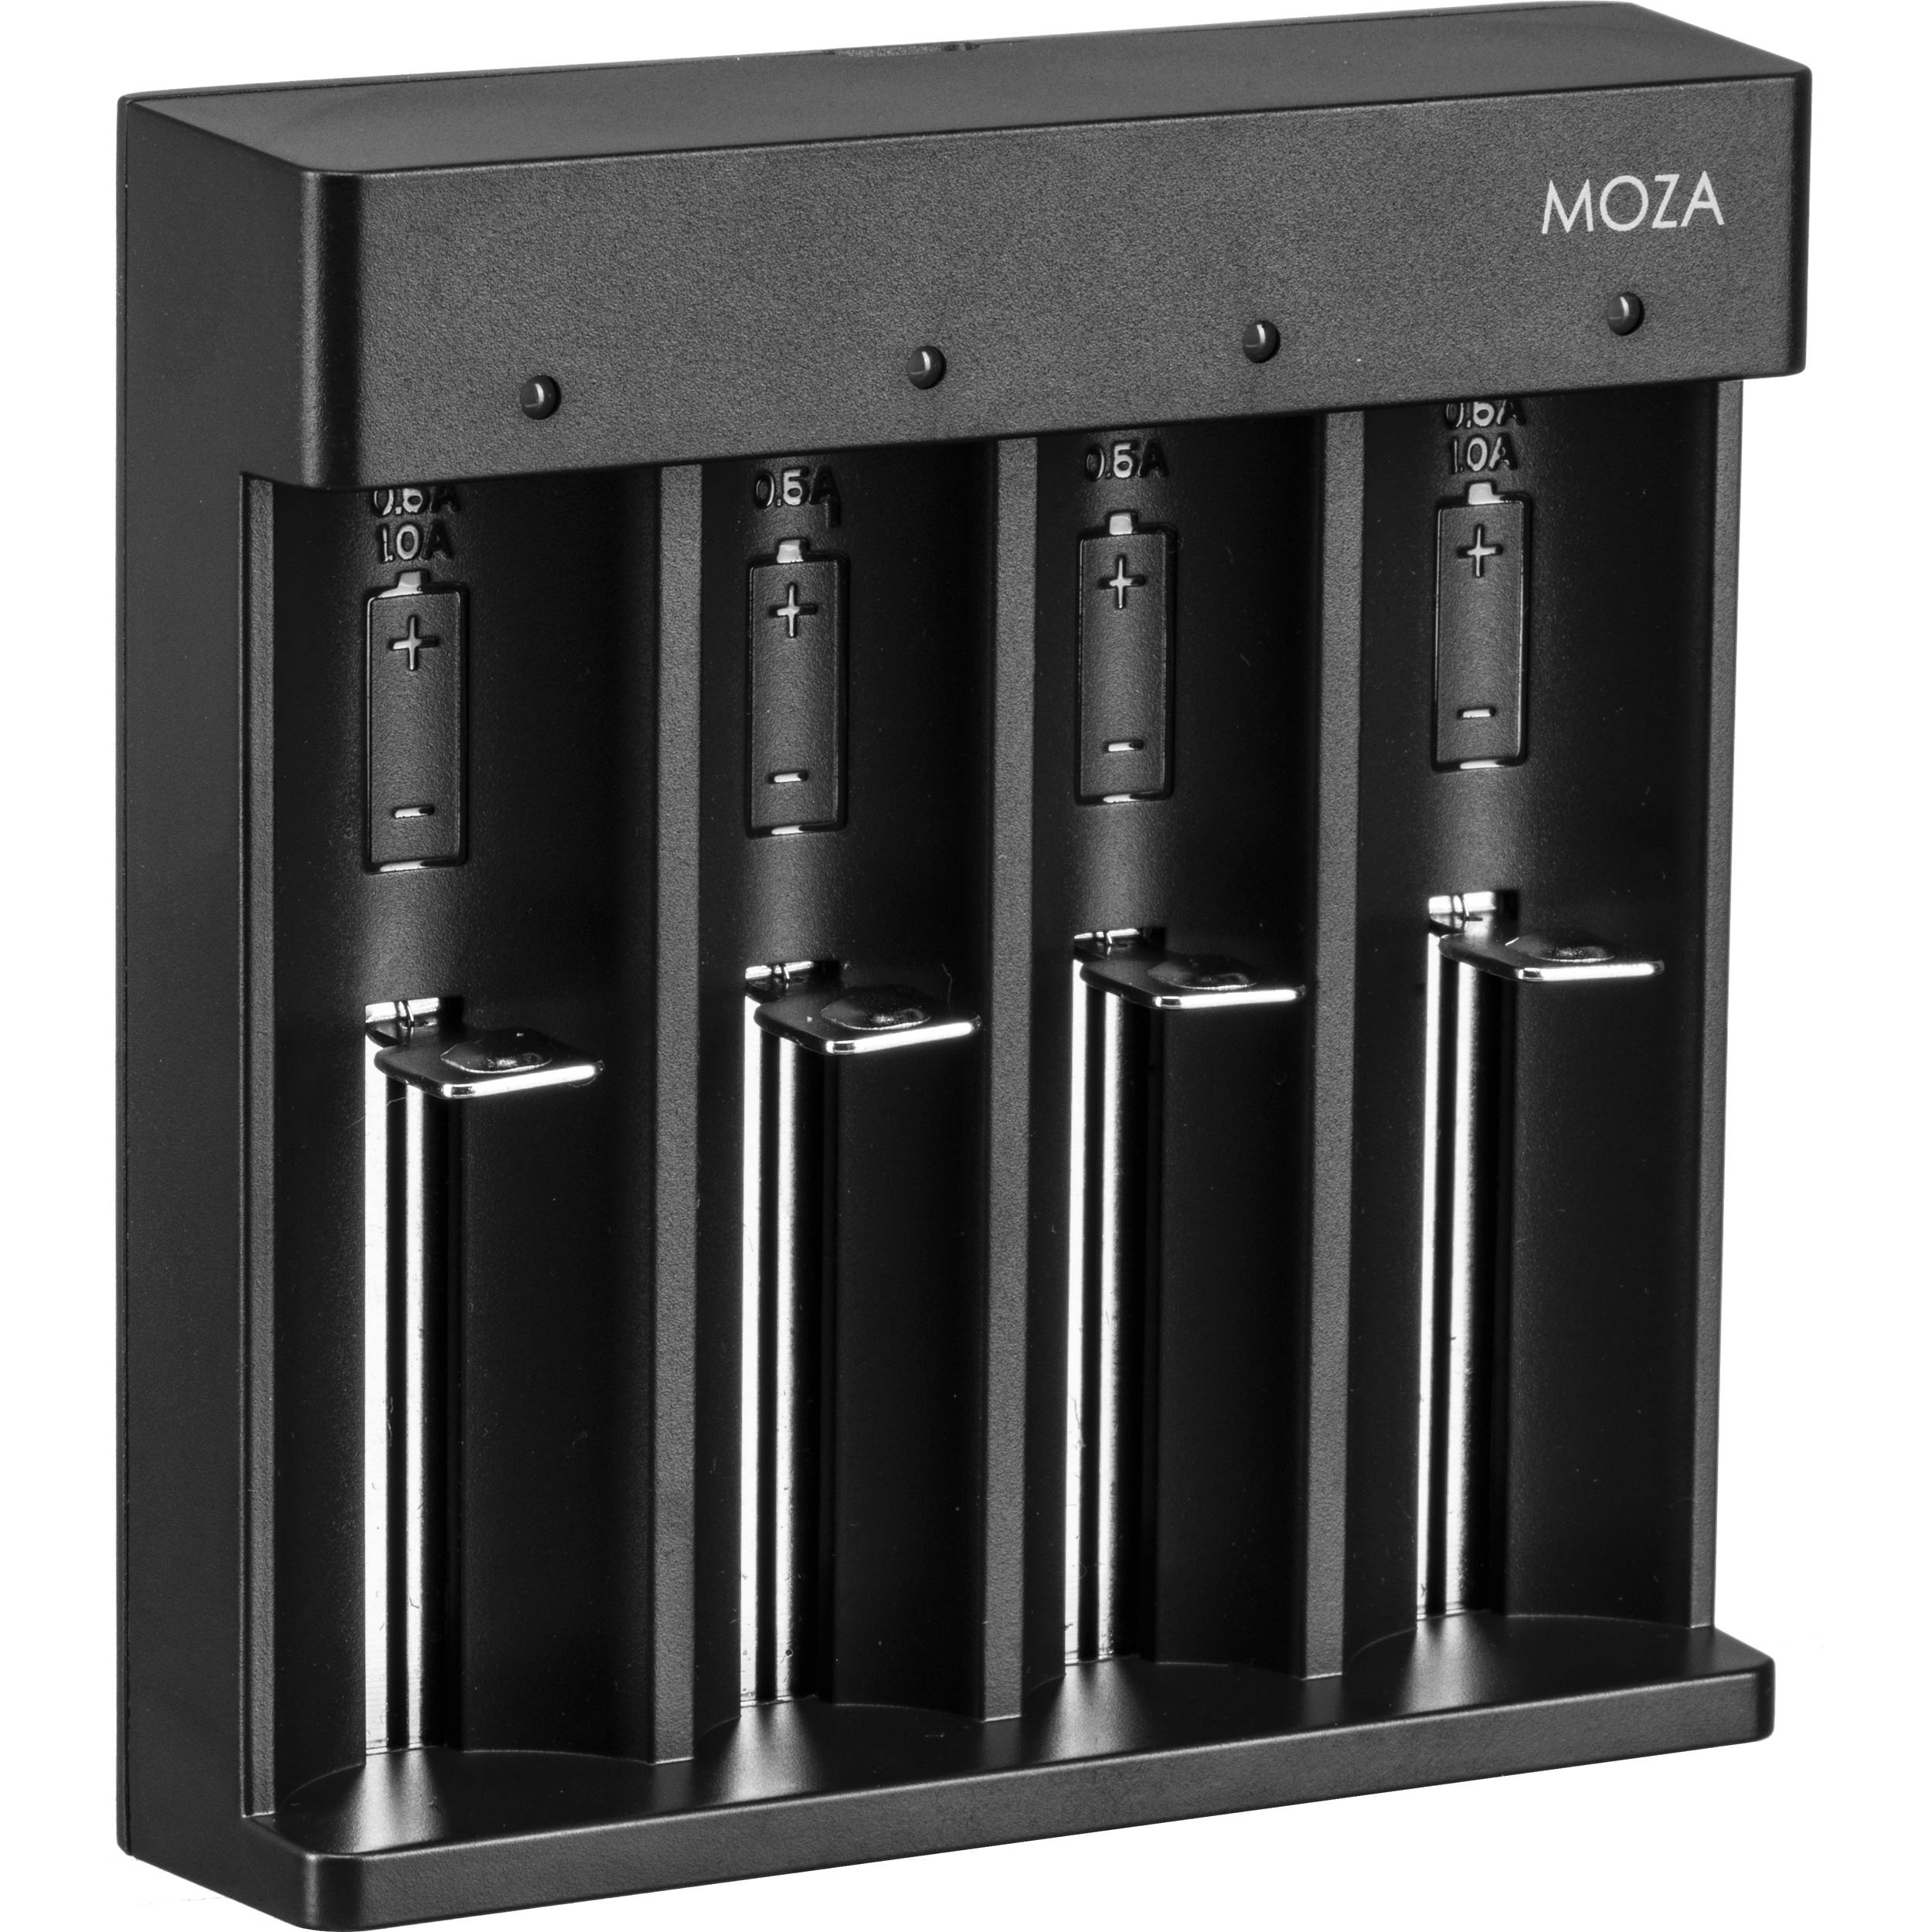 Moza 18650 Battery Charger For Moza Air 2 Mcg8 B Amp H Photo Video